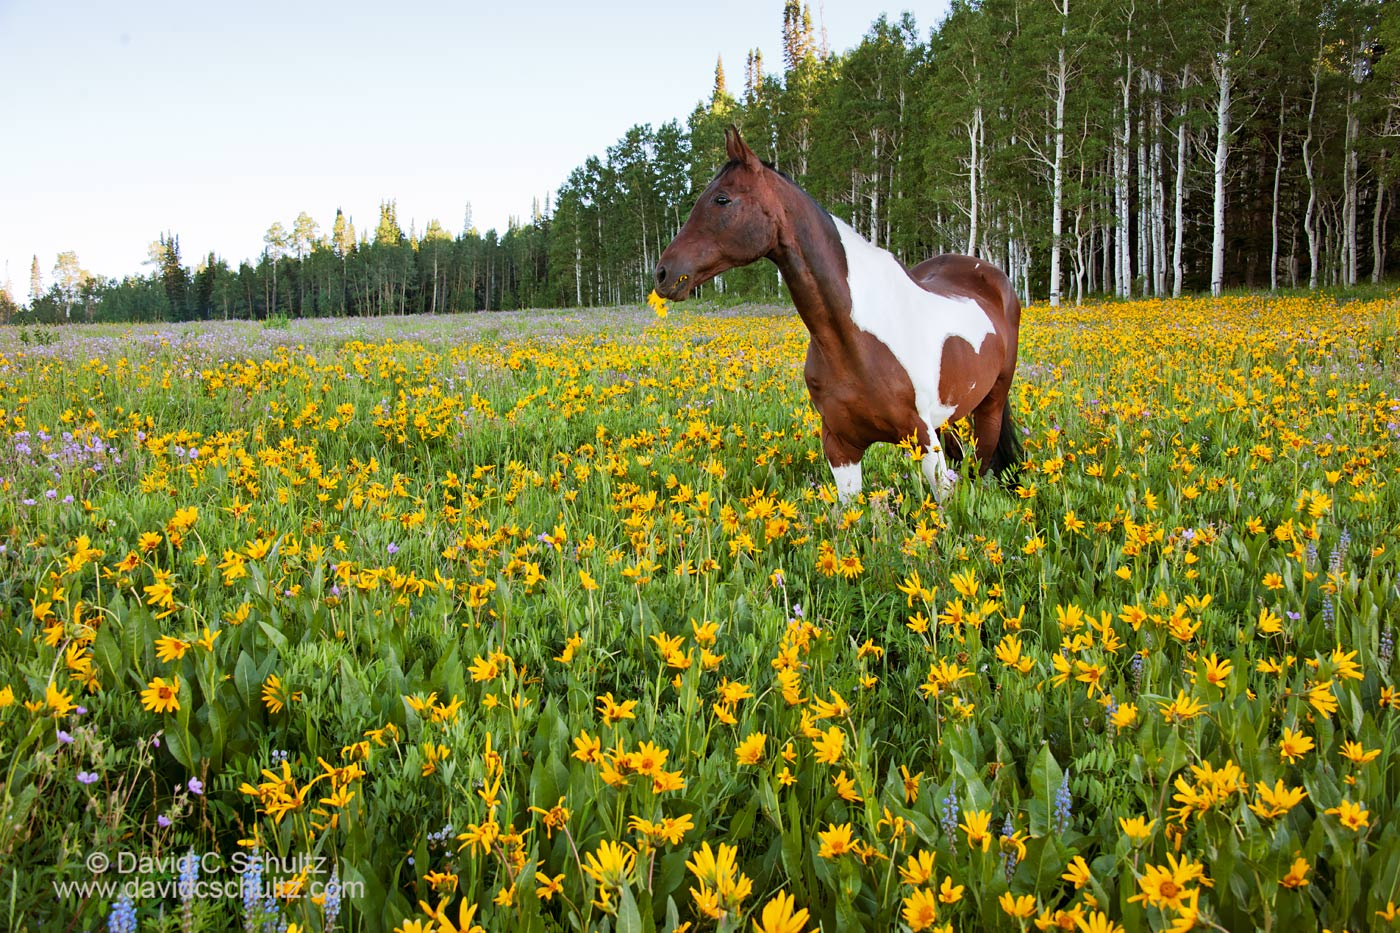 Horse in wildflowers in the Uinta Mountains, Utah - Image #47-831